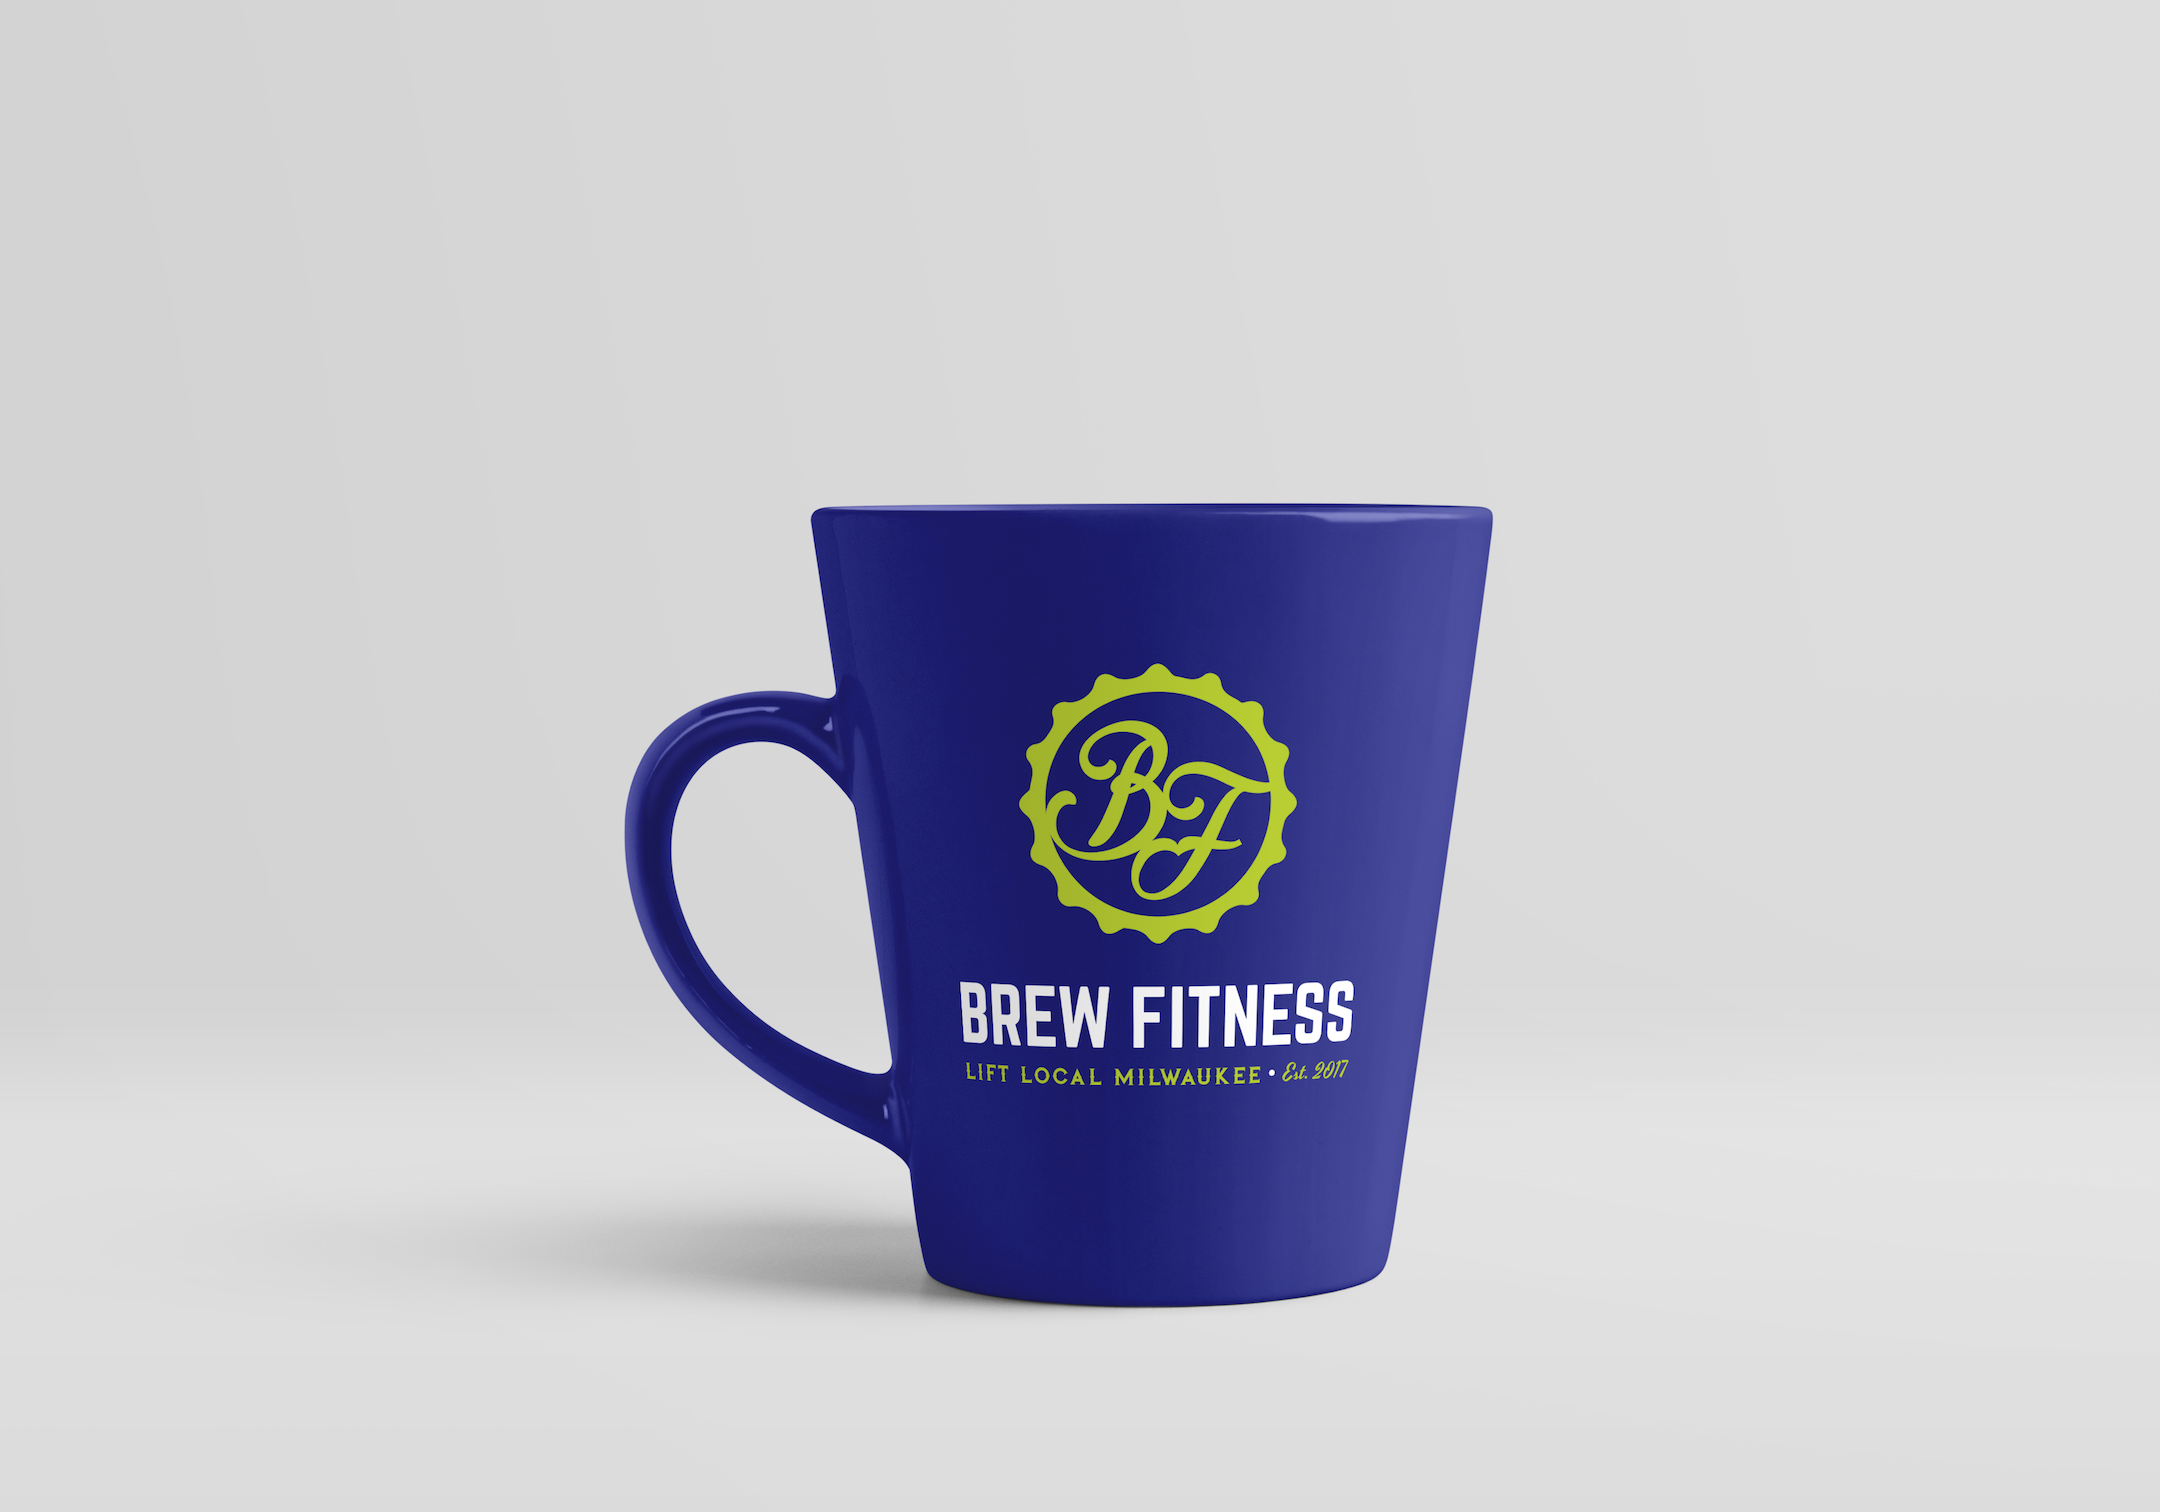 Golden-Antler-Design-Milwaukee-Web-Branding-Marketing-Fitness-Gym-Logo-Brew-Fitness